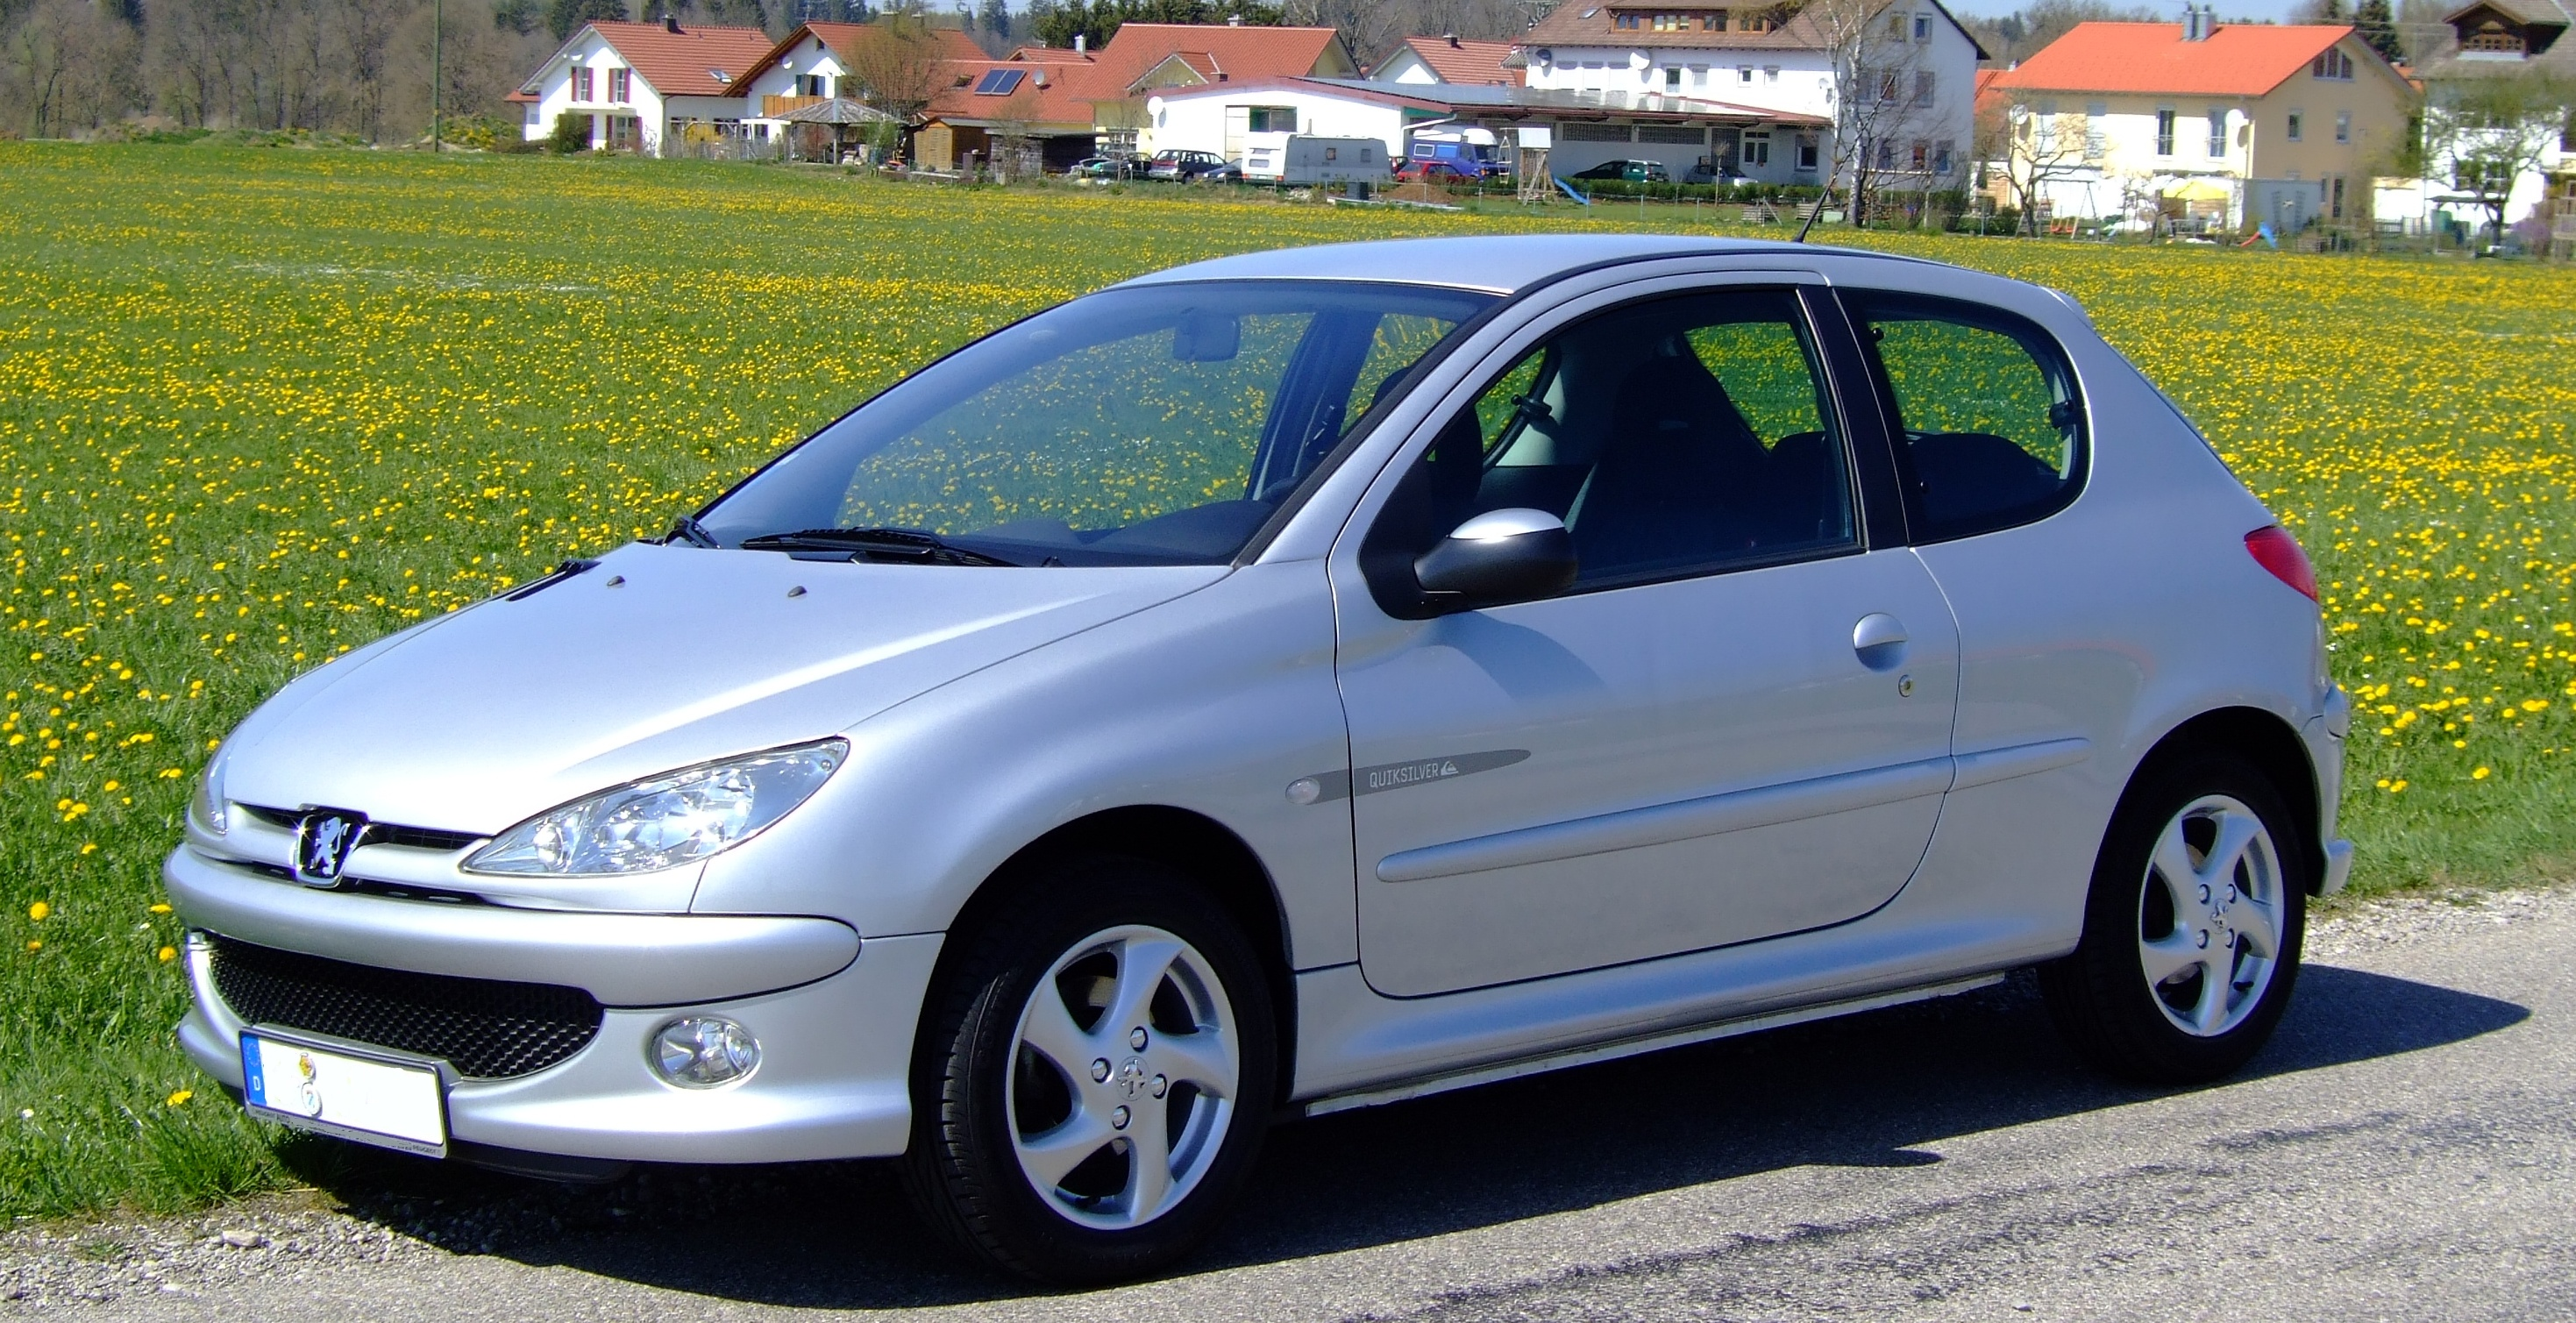 peugeot 206 pictures #7